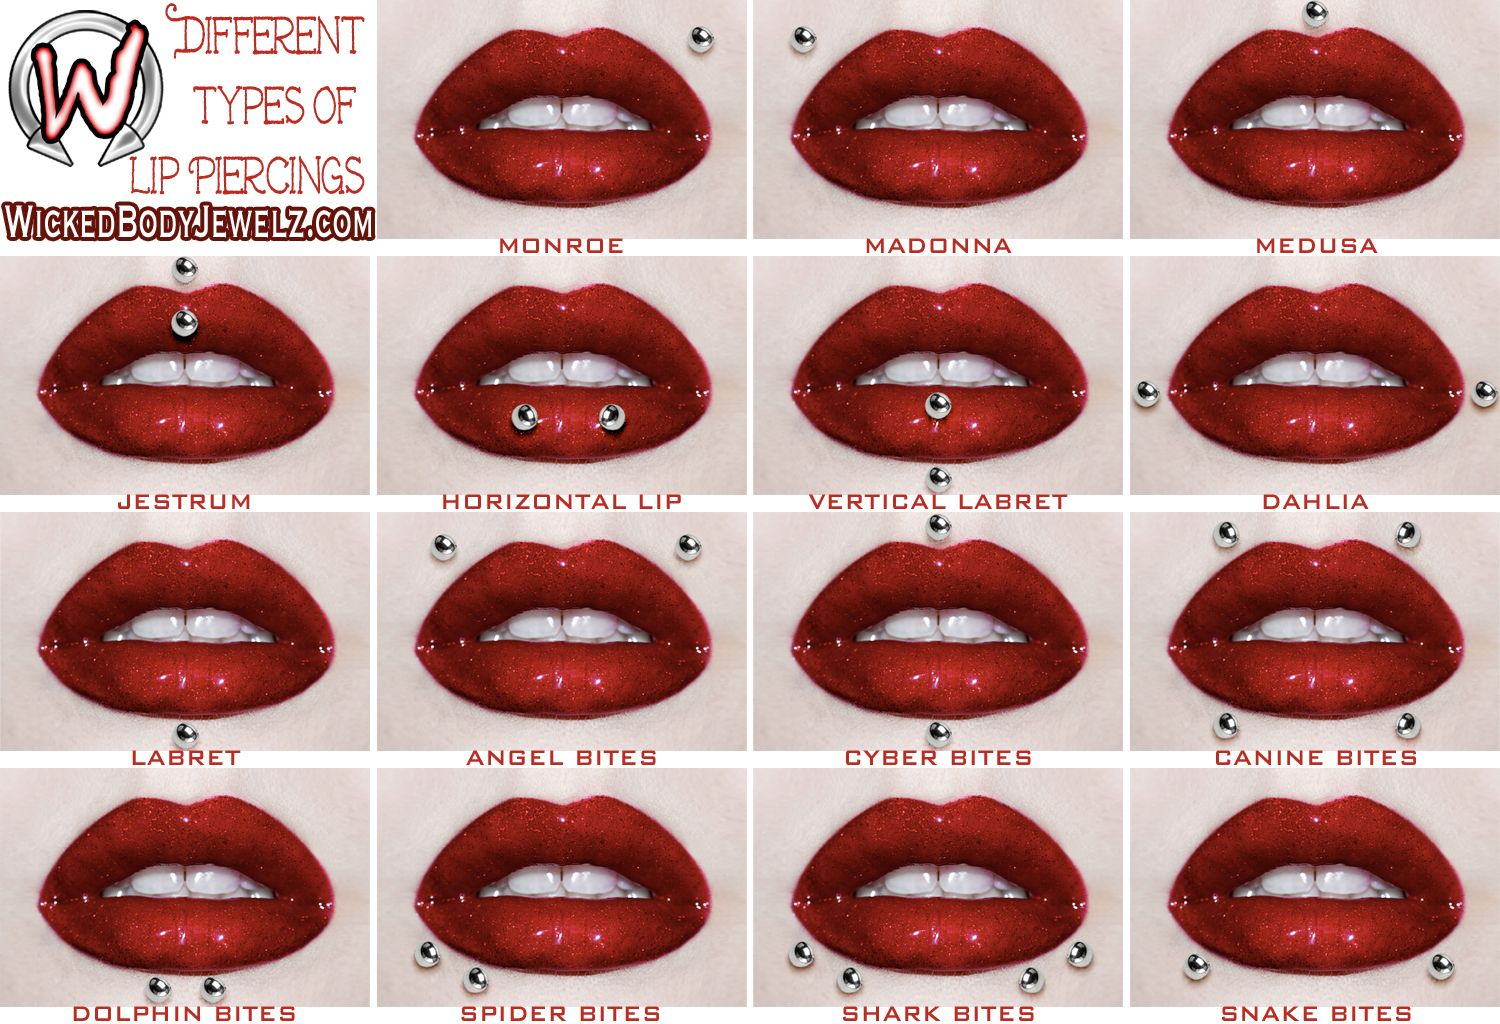 Enjoy this visual diagram of all the different types of lip enjoy this visual diagram of all the different types of lip piercings pooptronica Choice Image